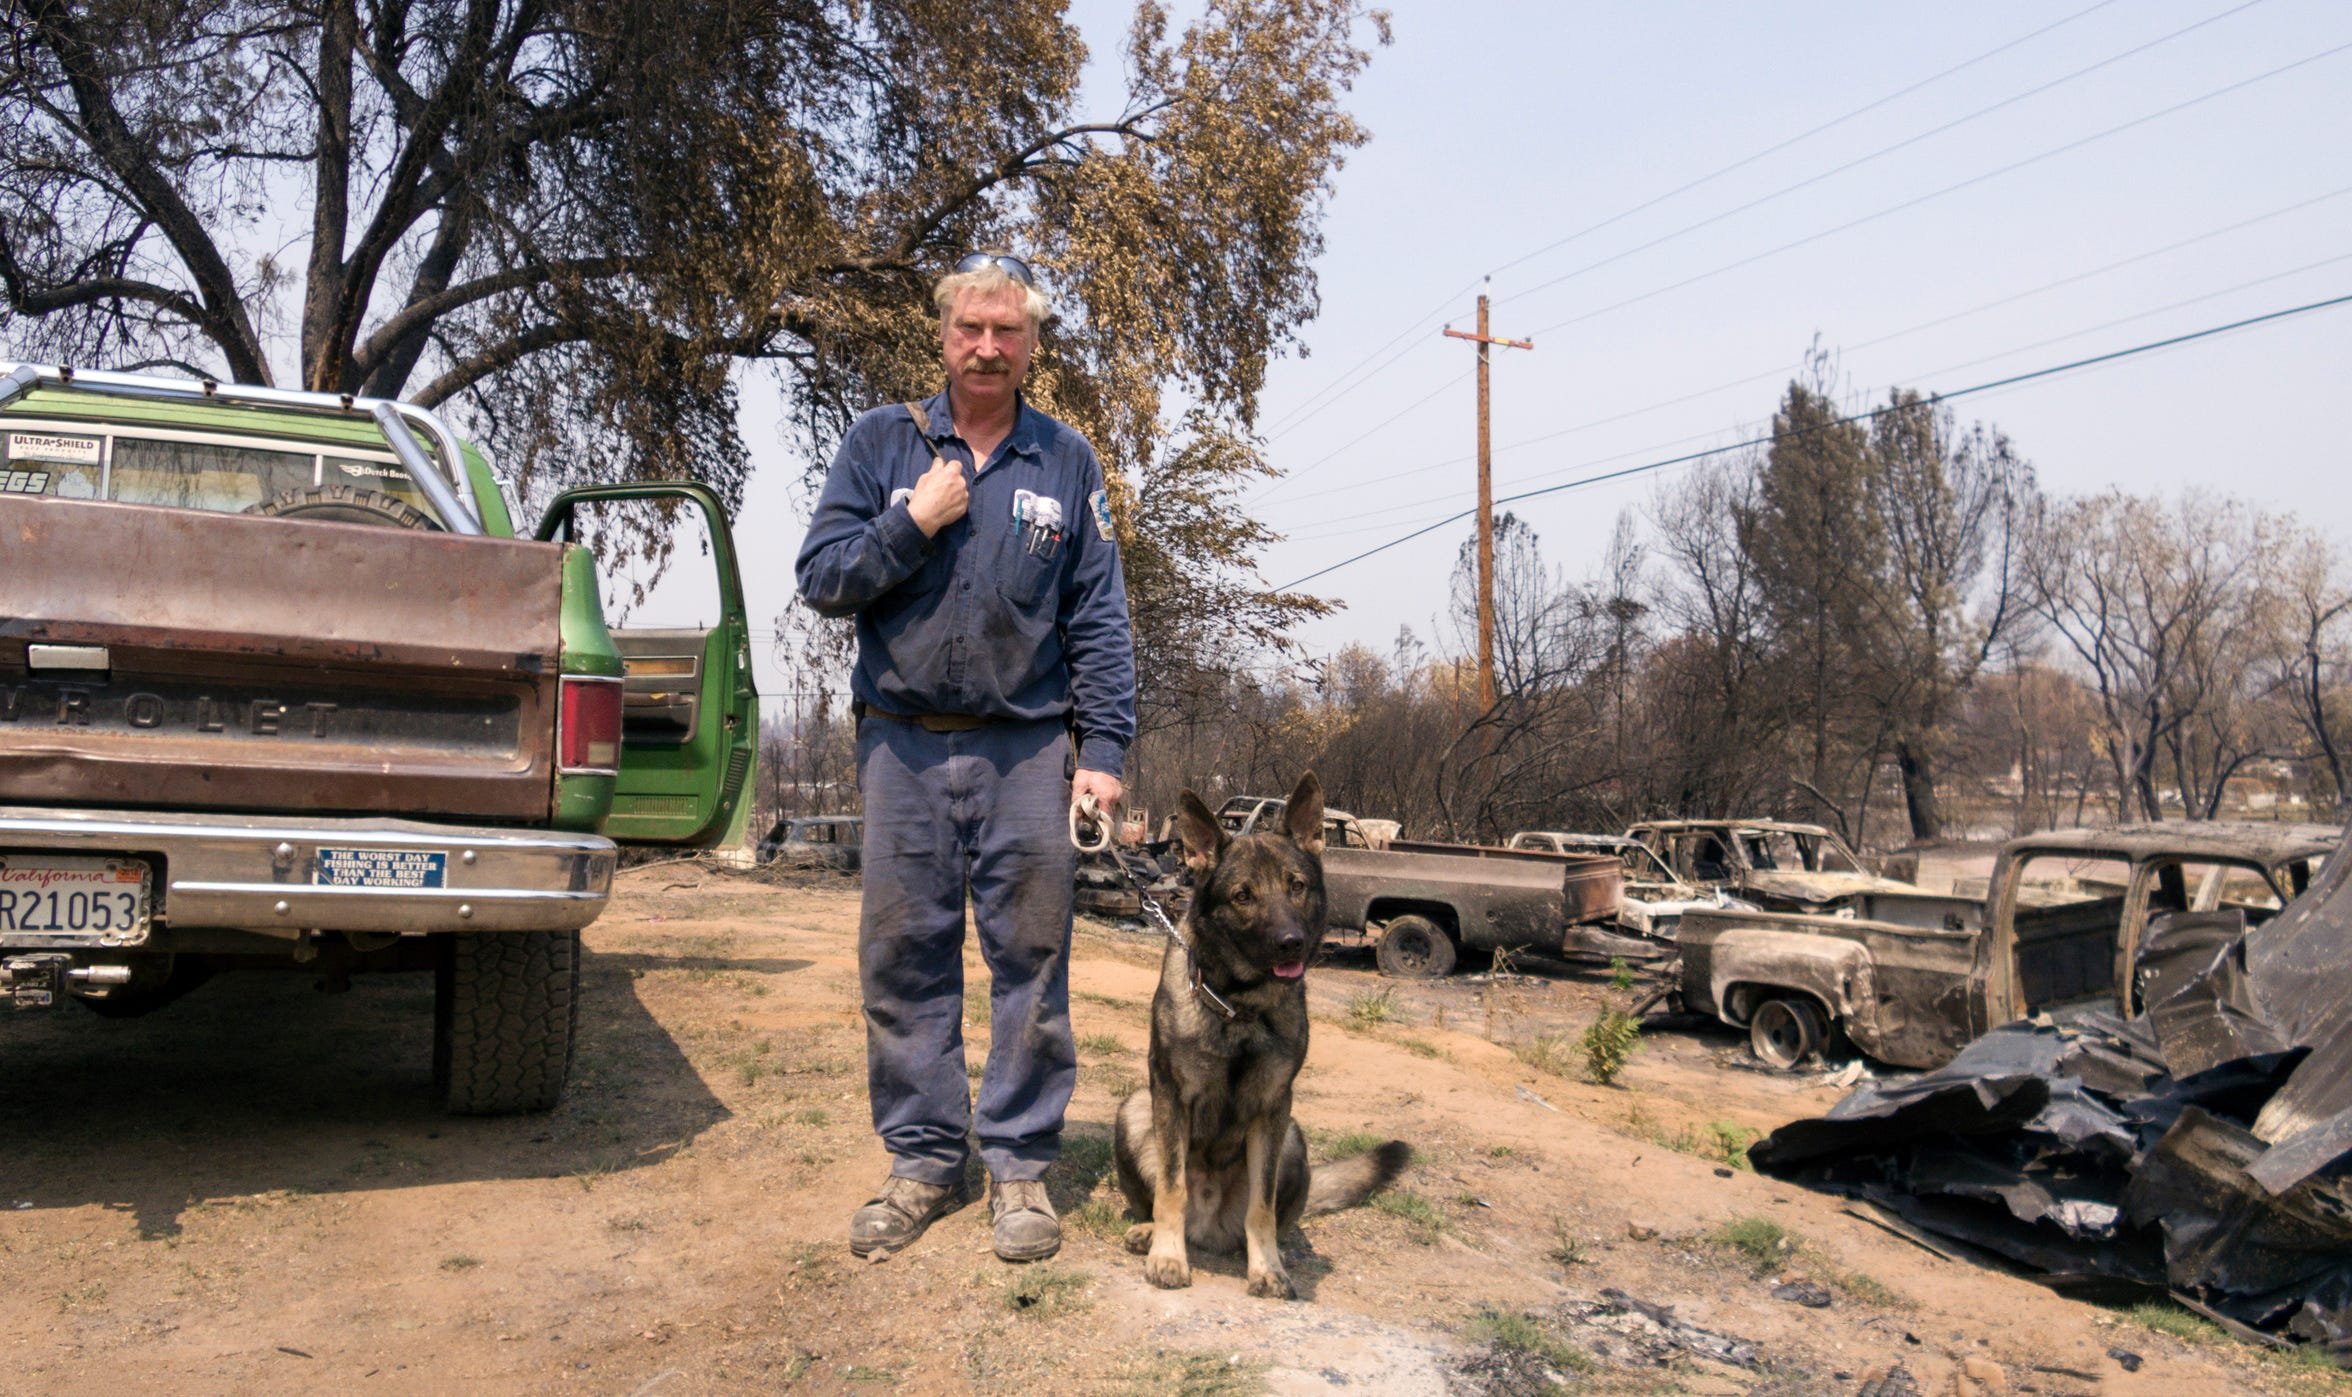 John J.J. Johnson, 53, who lost his rental home, $40,000 in tools and 14 cars from the tornado fire tries to salvage what he can with his dog Max in Keswick, Calif., Monday, August 20, 2018.